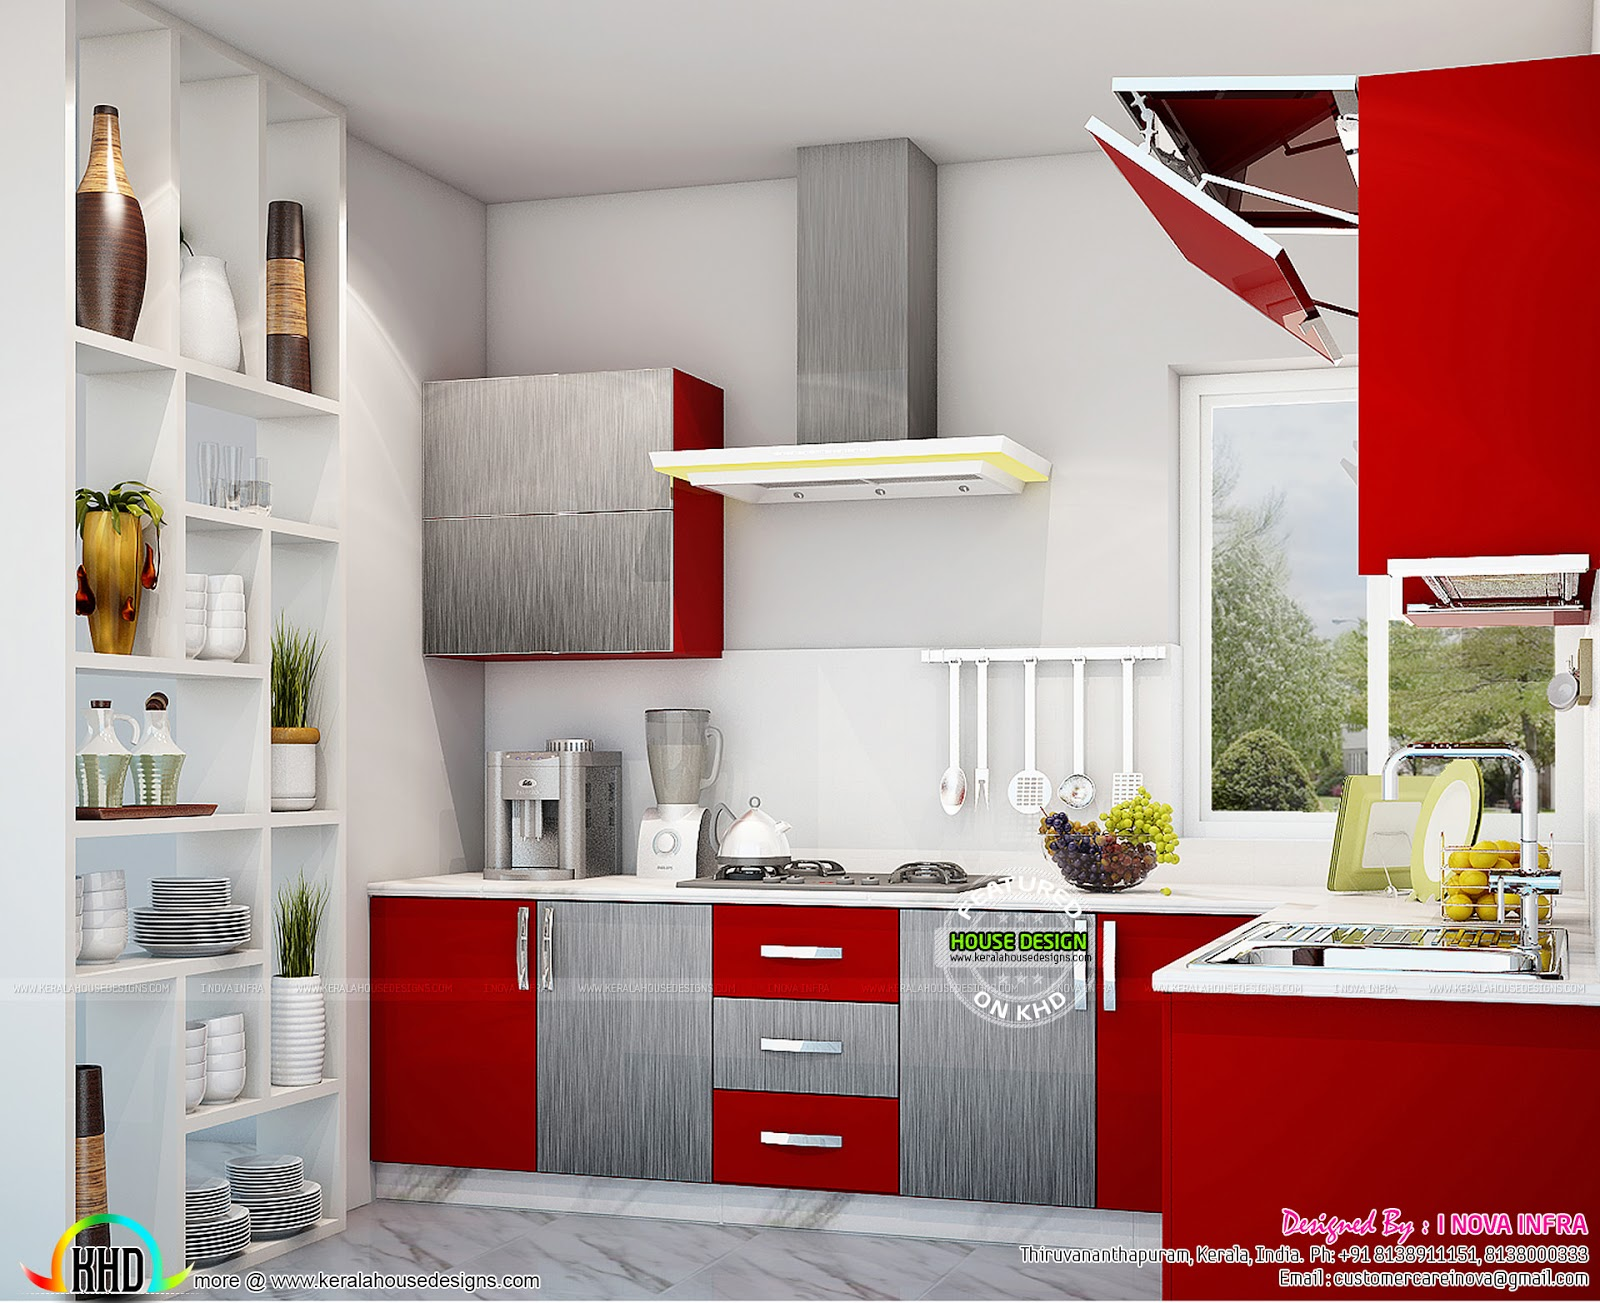 Kitchen interior works at trivandrum kerala home design for Interior design ideas for kitchens